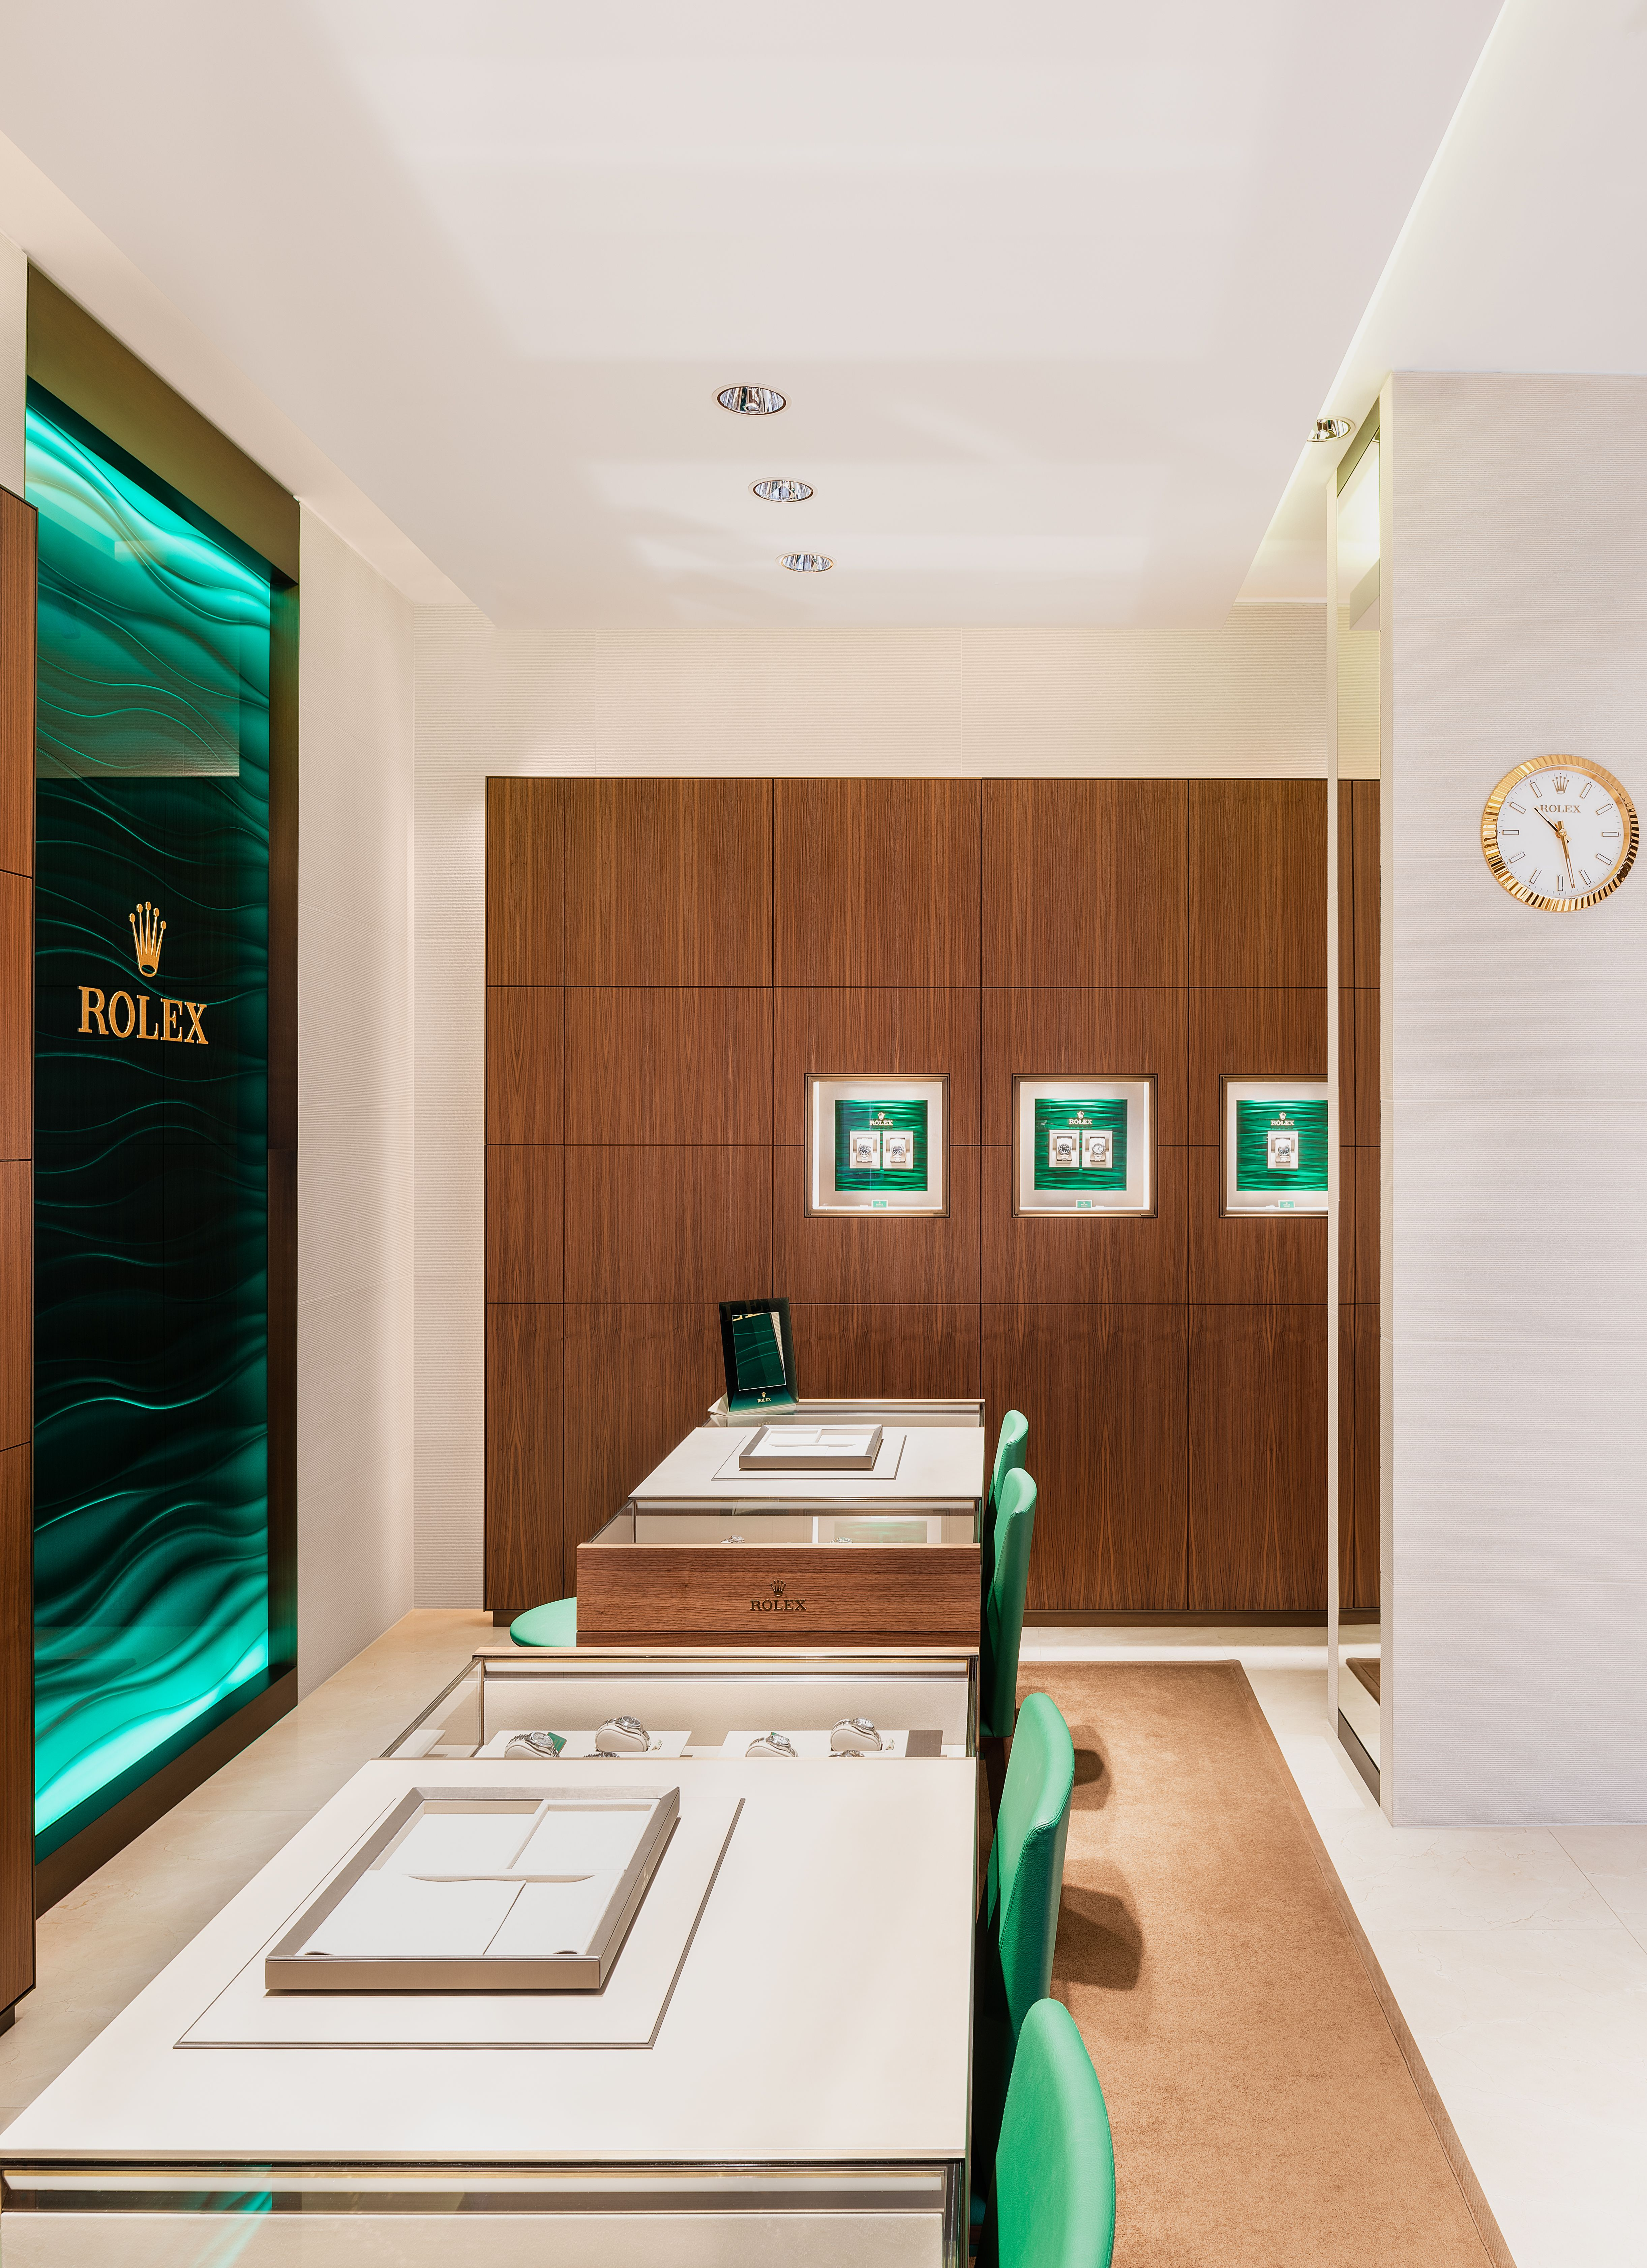 Pin On Official Rolex Retailer